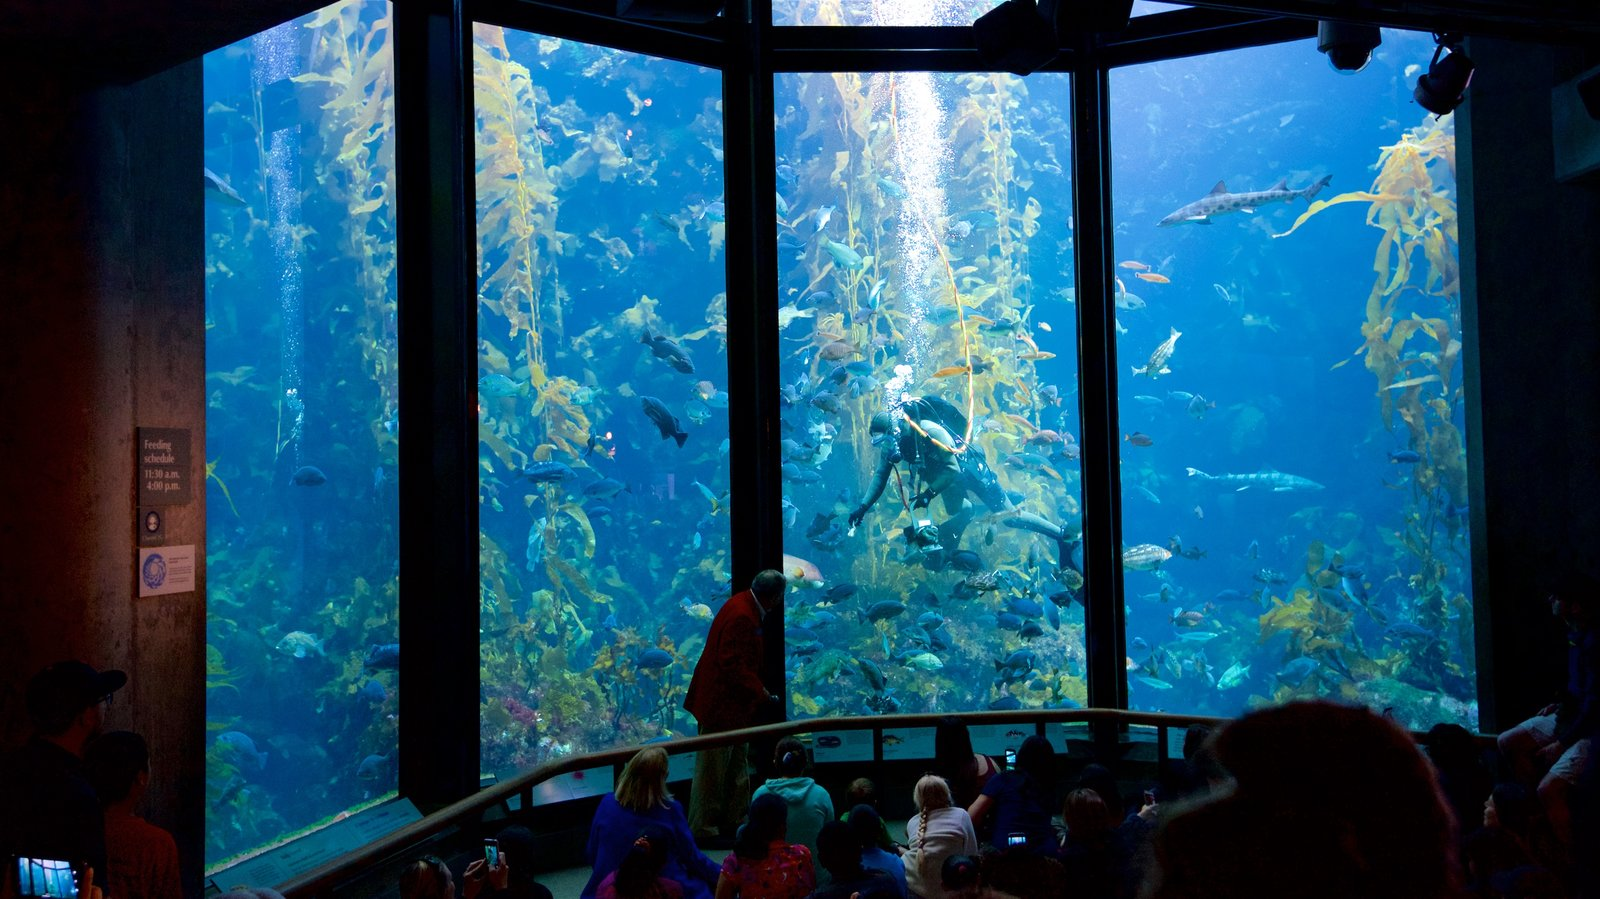 Monterey Bay Aquarium which includes marine life and interior views as well as a large group of people